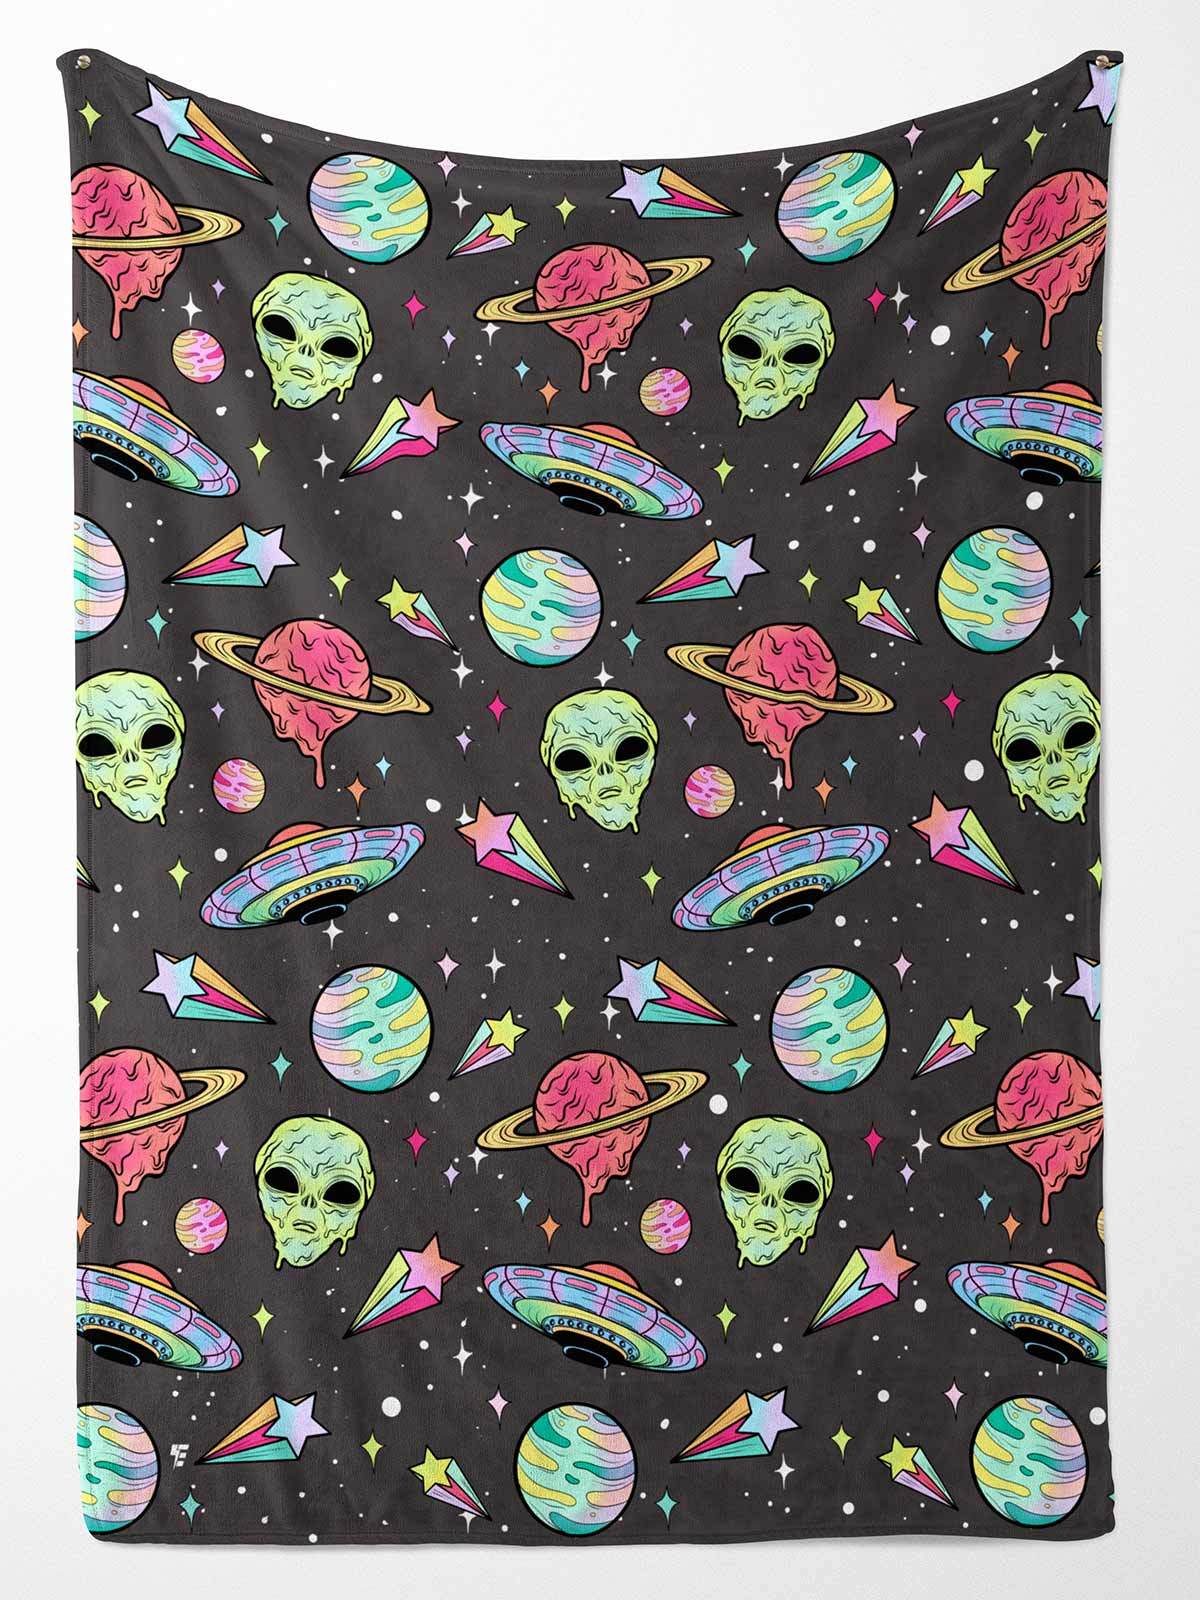 Alien Drip Party Blanket Blanket Electro Threads